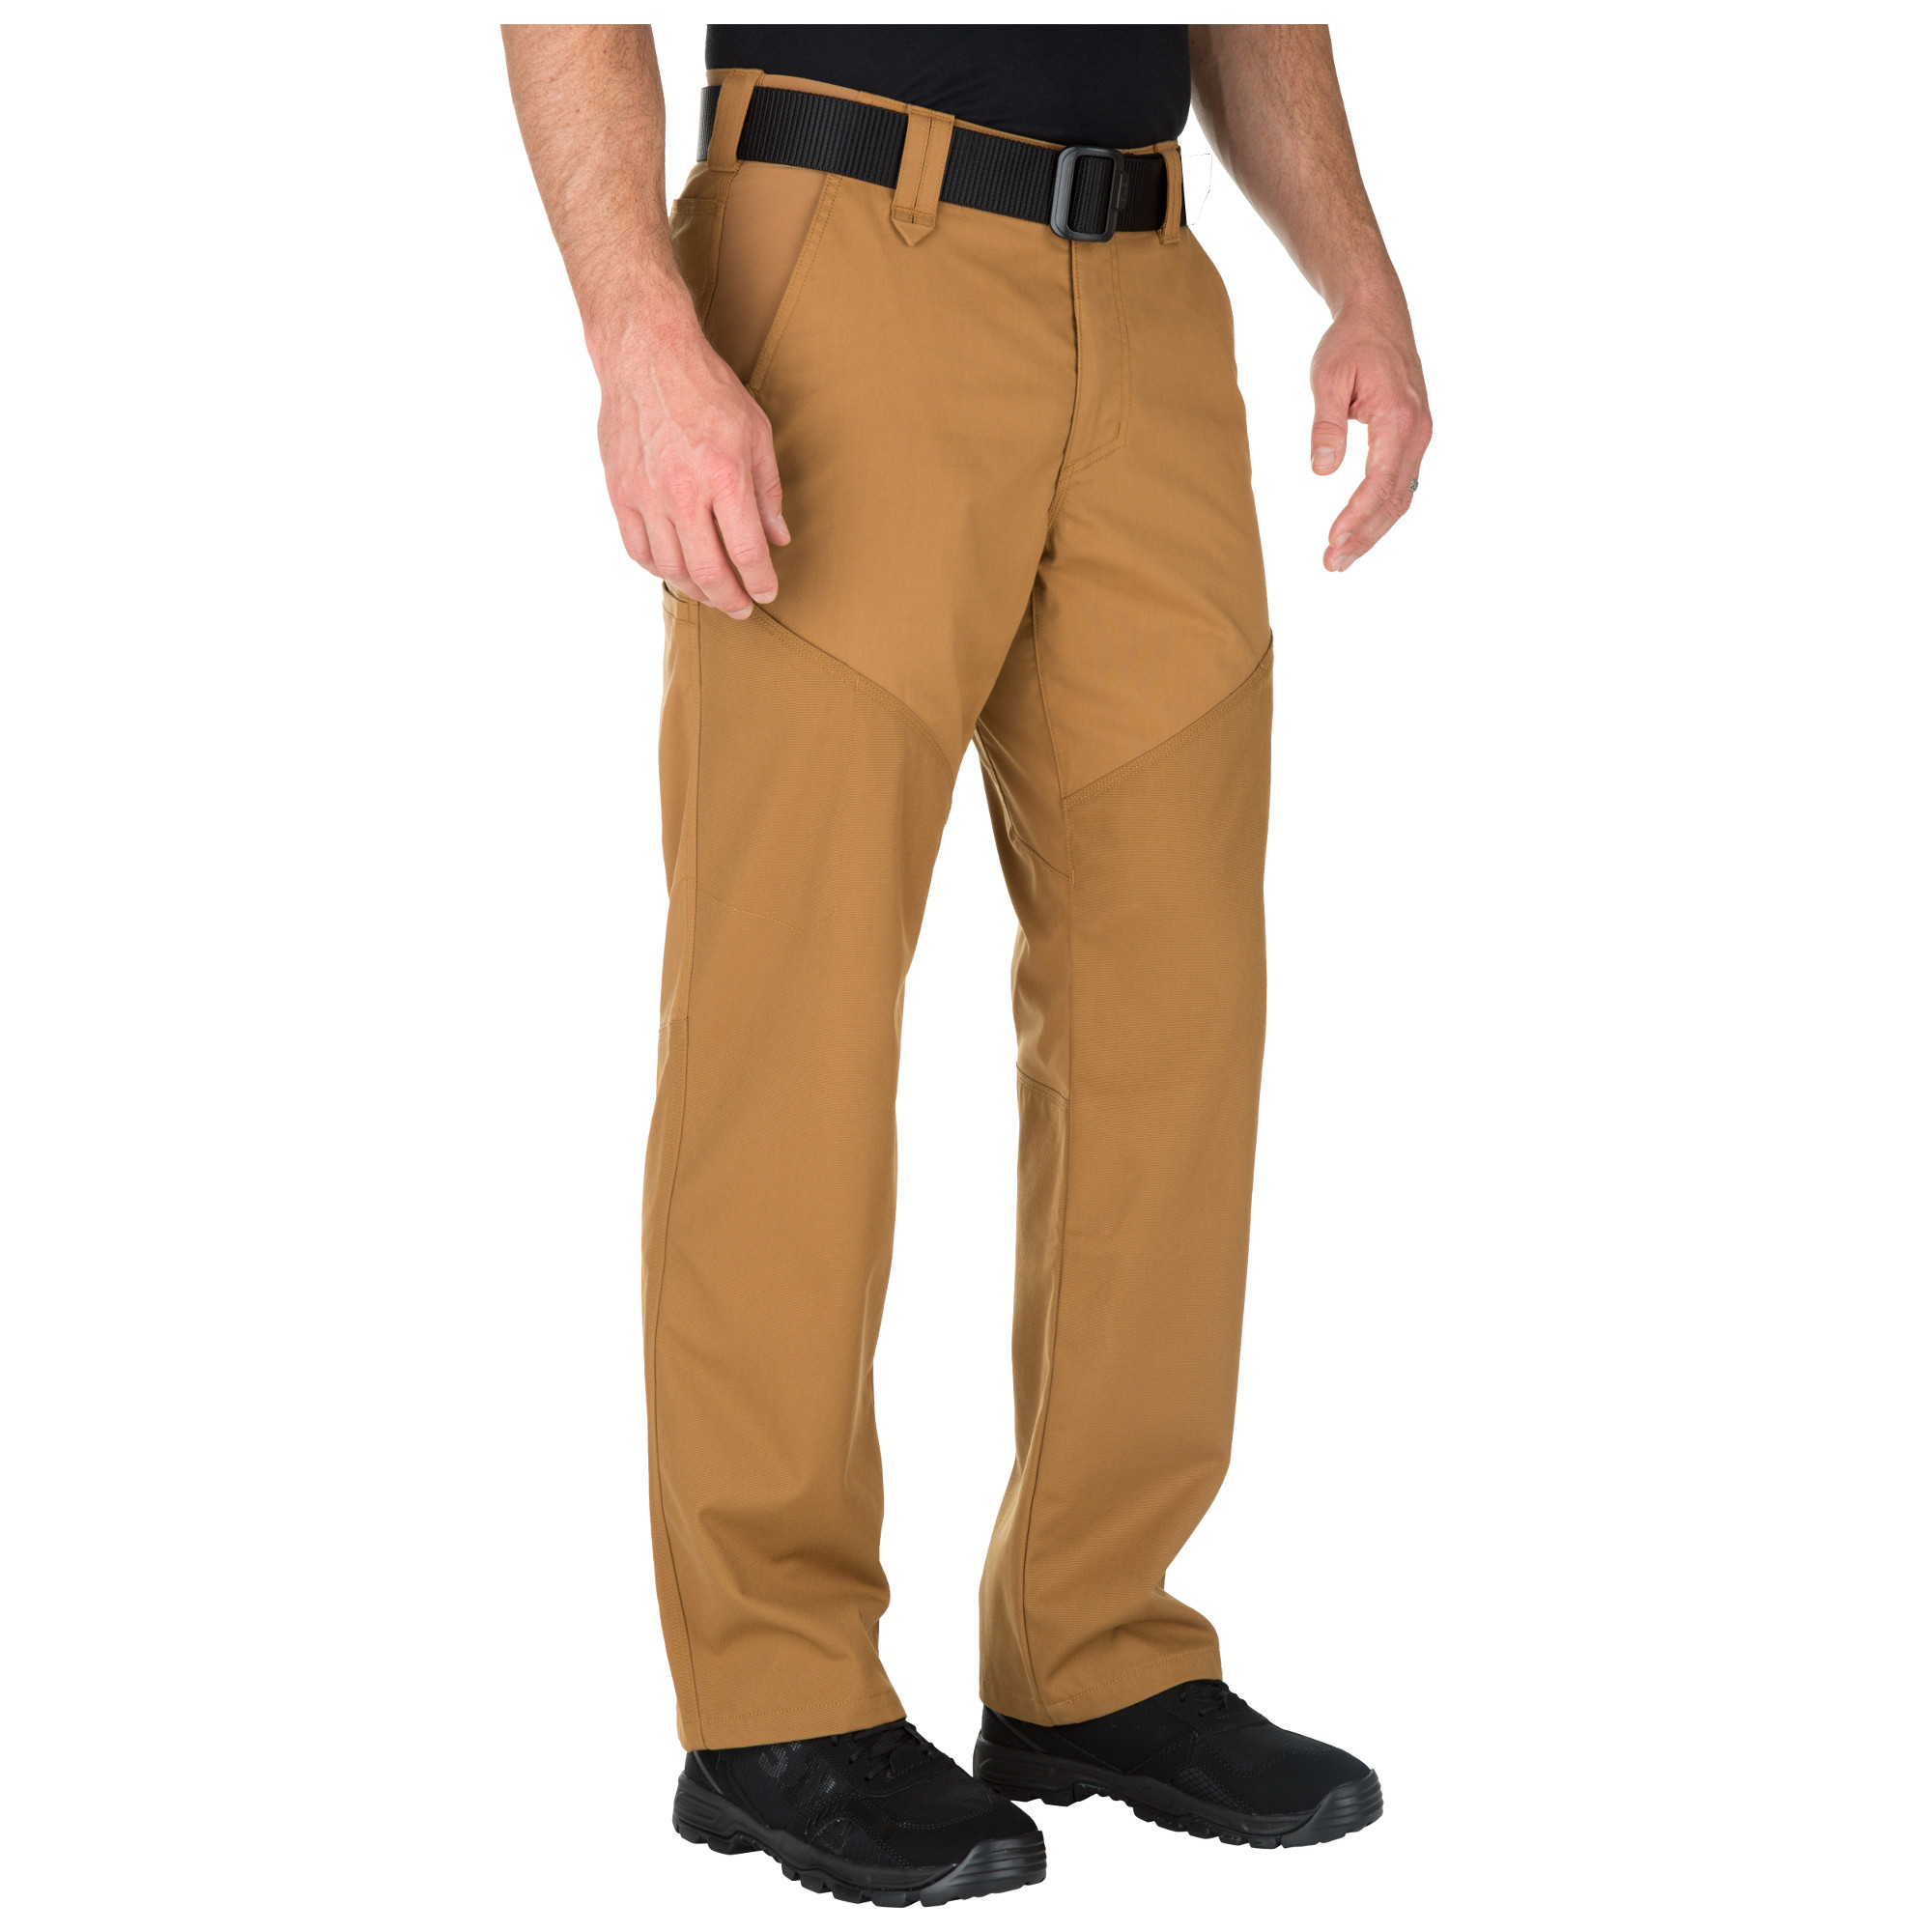 5.11 Tactical Men Stonecutter Pant (Brown) thumbnail